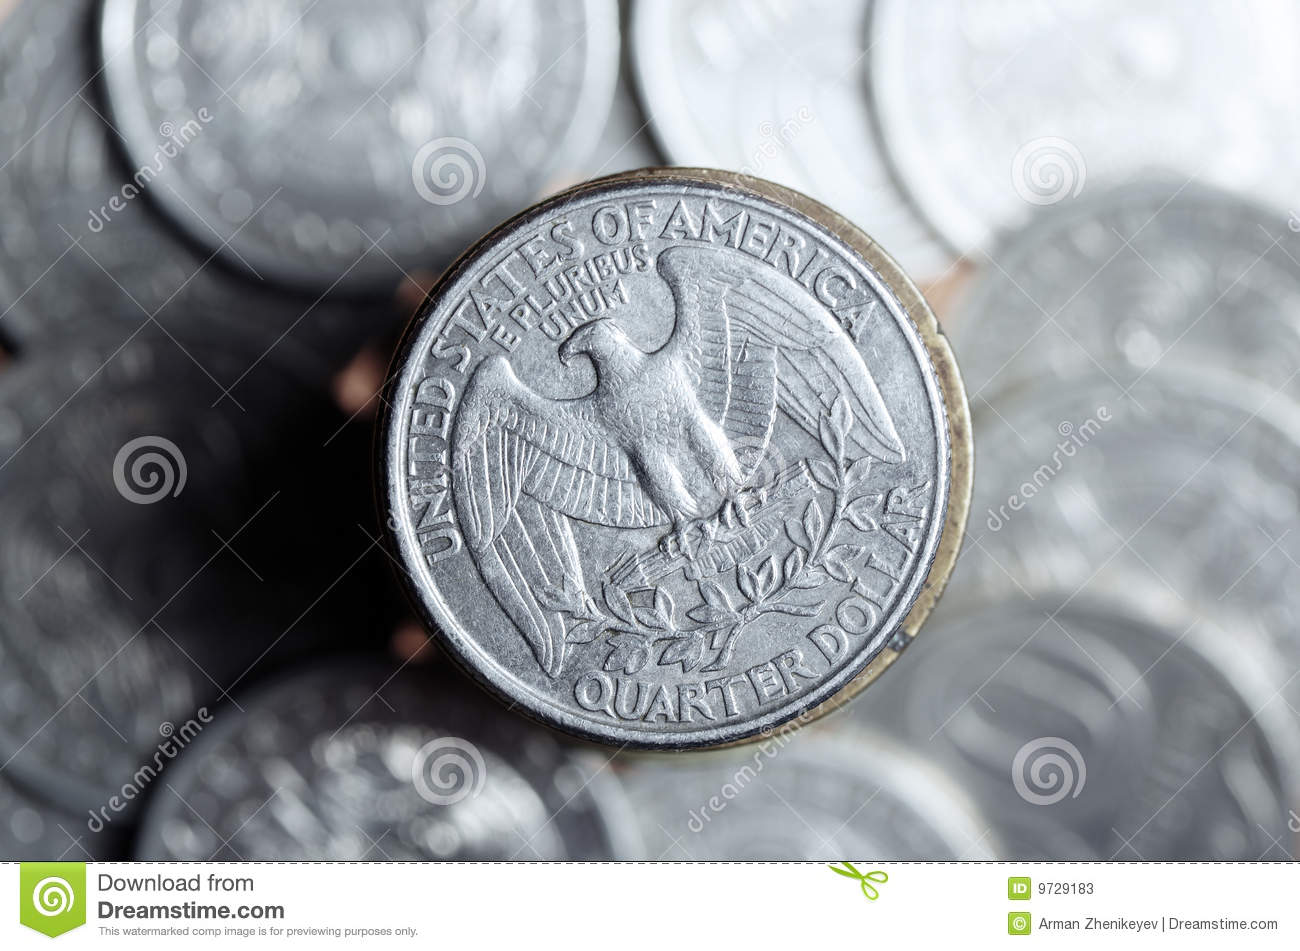 Old Quarter Dollar Coins http://www.dreamstime.com/stock-photos-quarter-dollar-image9729183